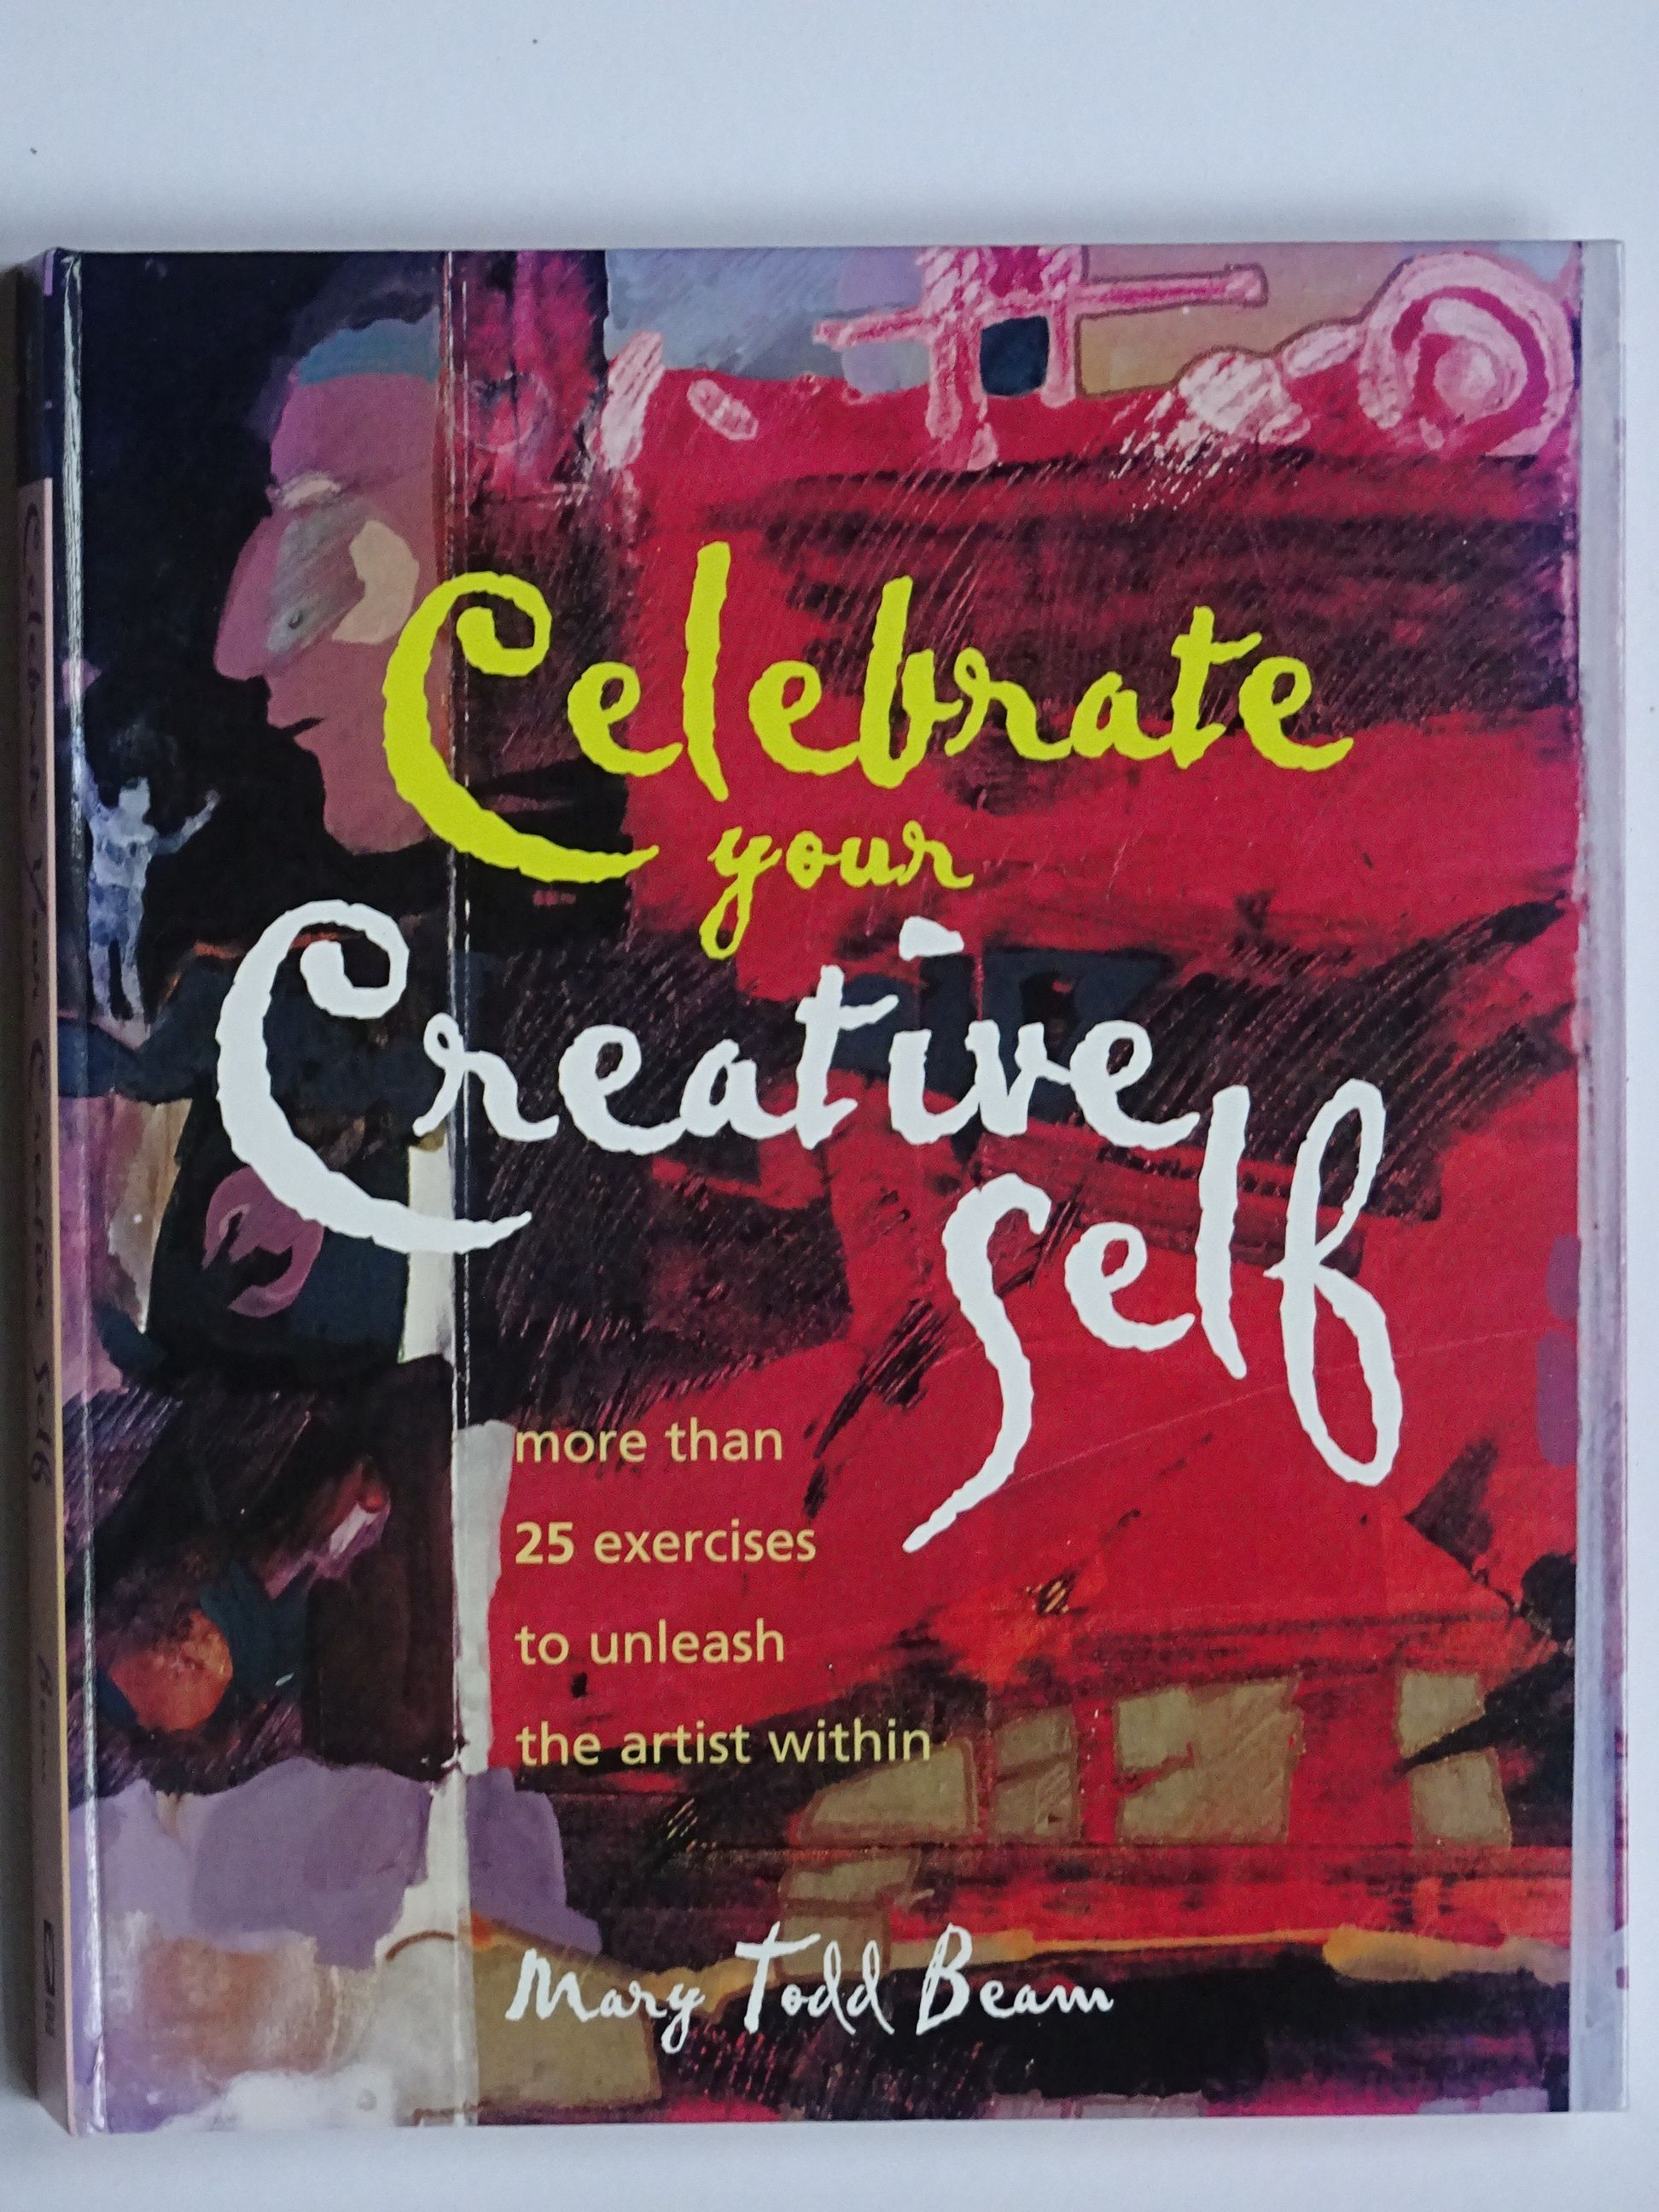 Beam, Mary Todt - Celebrate your Creative self. More than 25 exercises to unleash the artist within